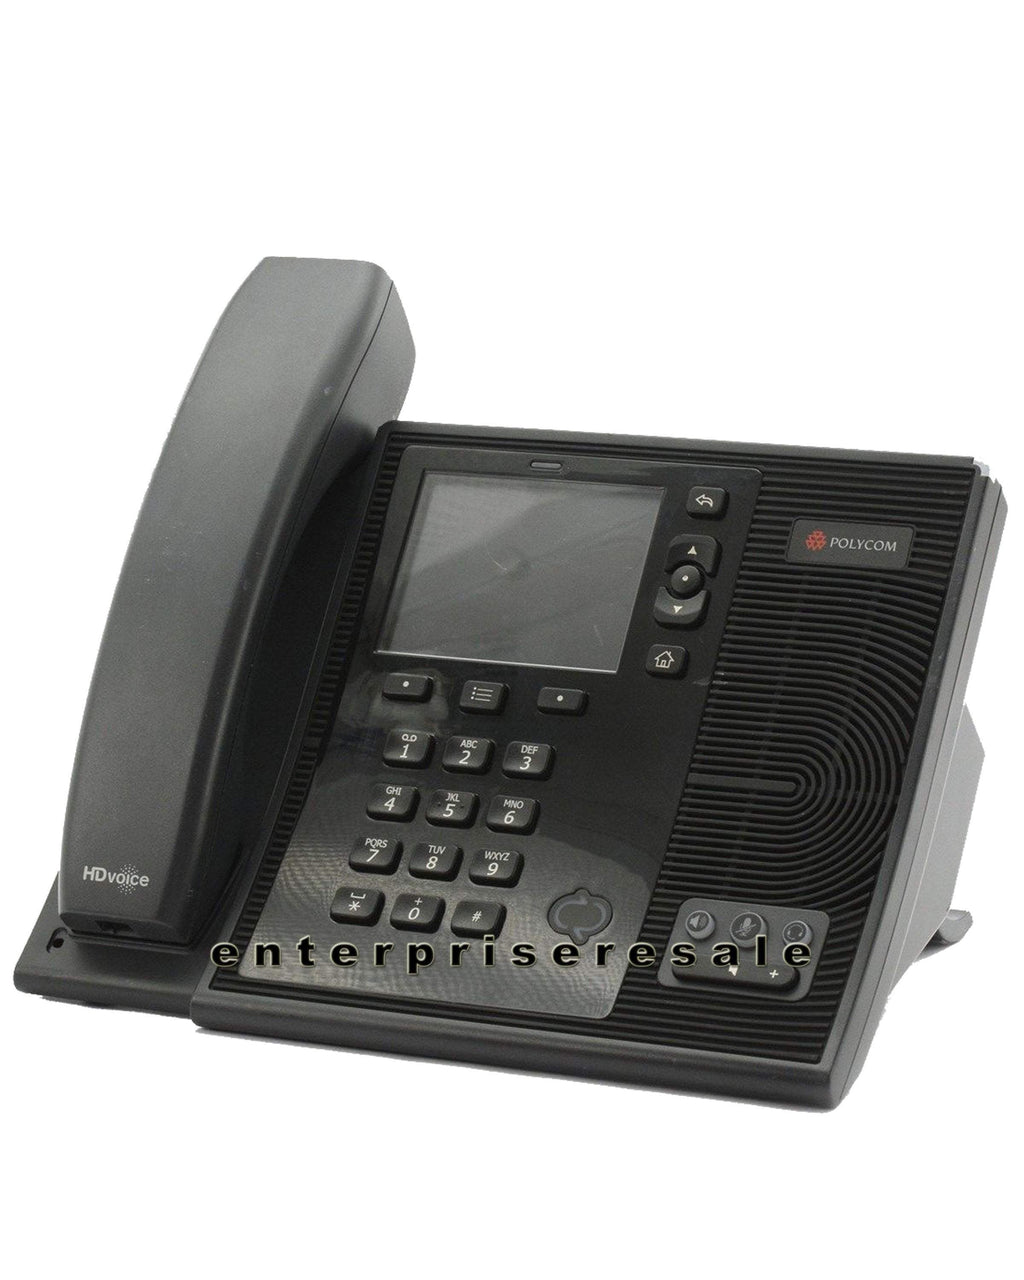 Polycom IP Phone Polycom CX600 VoIP 2201-15942-001 windows embedded